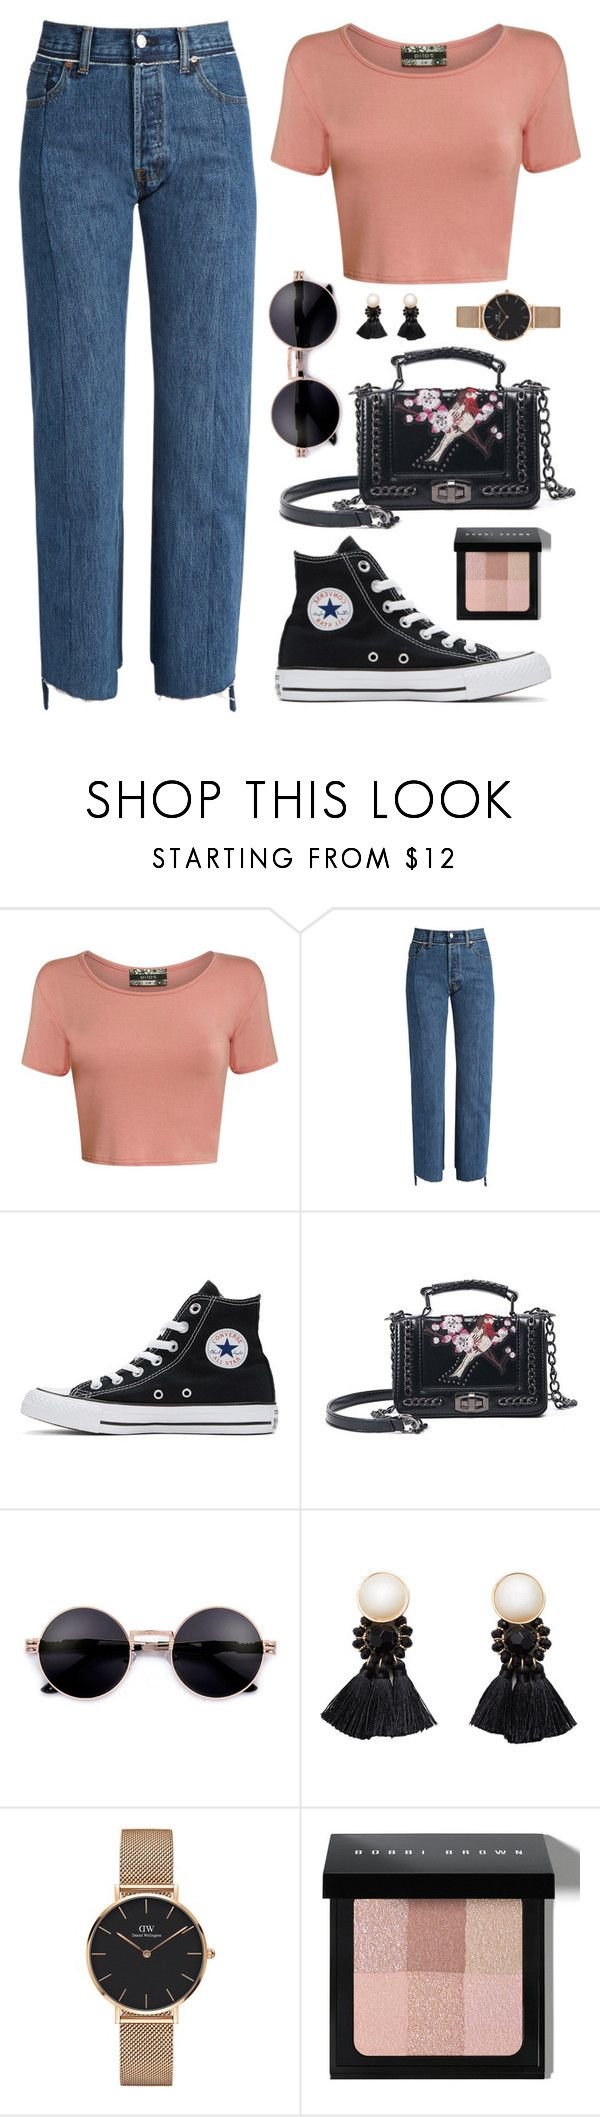 """Woozi X Exploring Osaka"" by jleeoutfitters ❤ liked on Polyvore featuring Pilot, Vetements, Converse, Violeta by Mango, Daniel Wellington and Bobbi Brown Cosmetics"